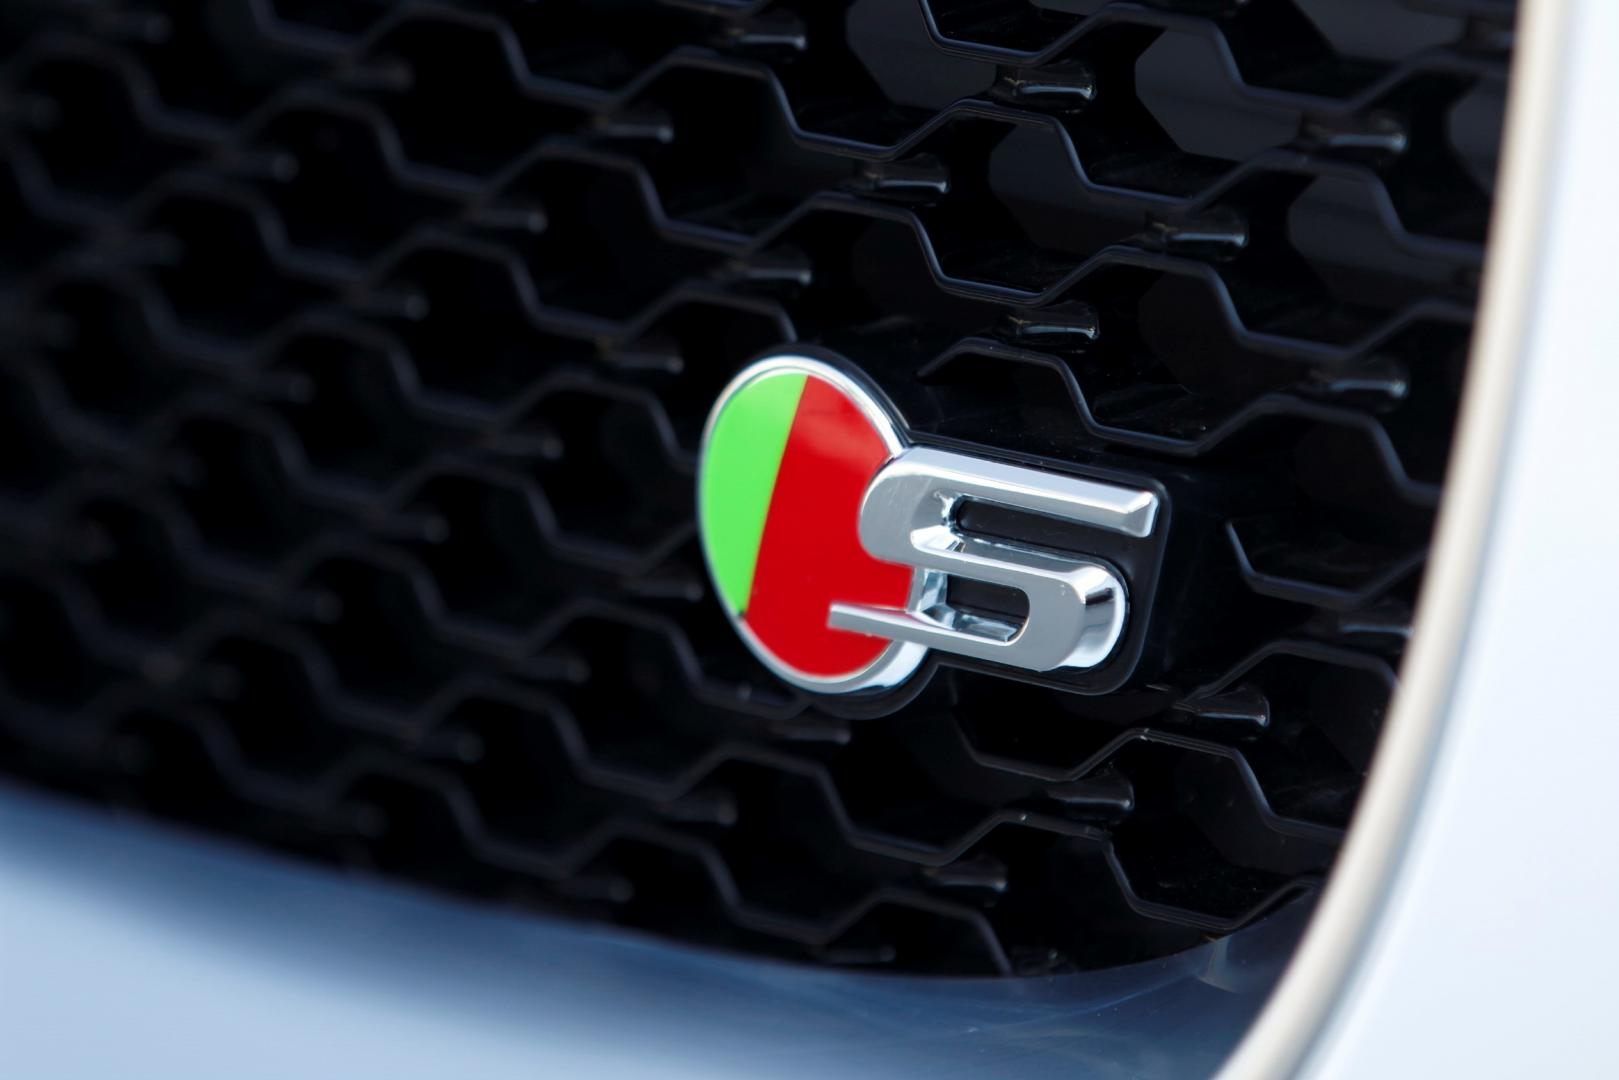 Jaguar XE S 3.0 V6 badge (2015)